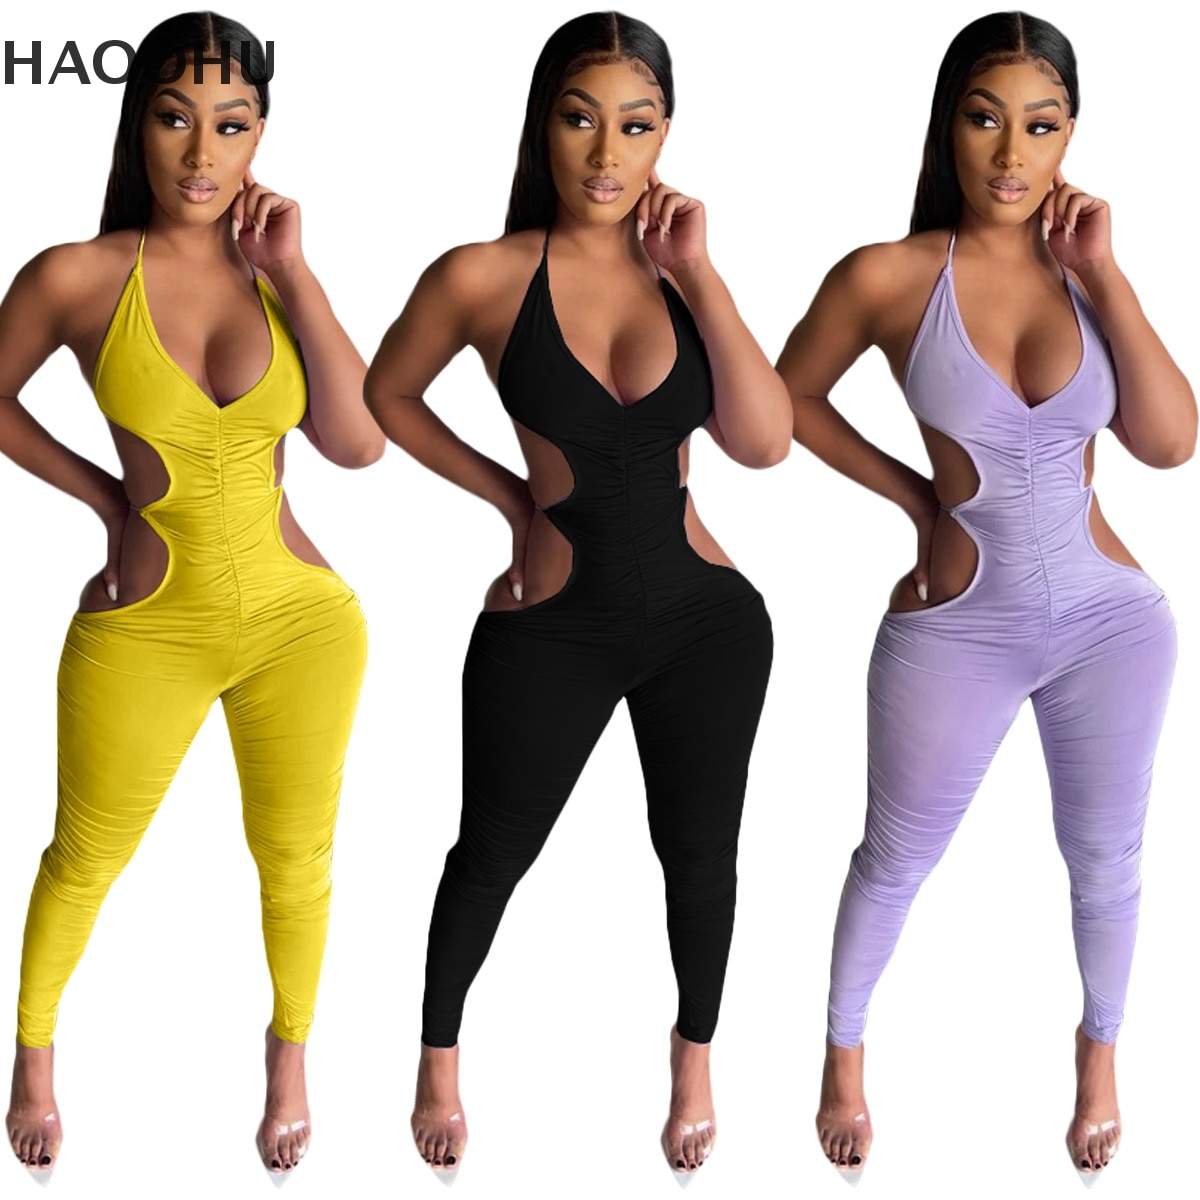 HAOOHU Cross-border Foreign Trade Women's new Style Summer Fashion Casual Suspender Folds Open Back Sexy Trousers Jumpsuit